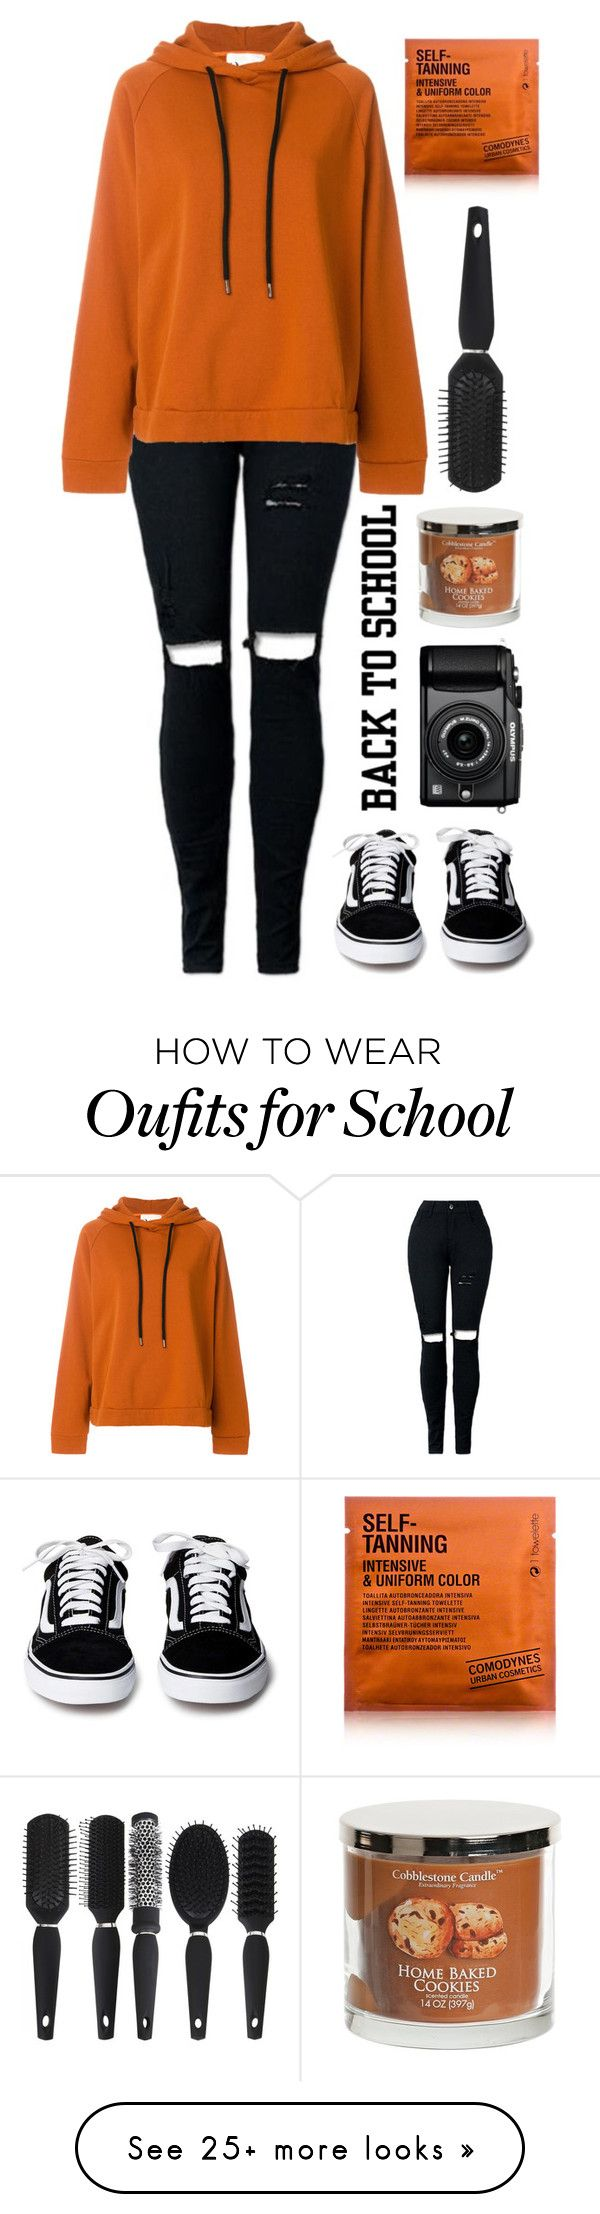 """>>>"" by swehbz on Polyvore featuring 8PM, Olympus and Comodynes"